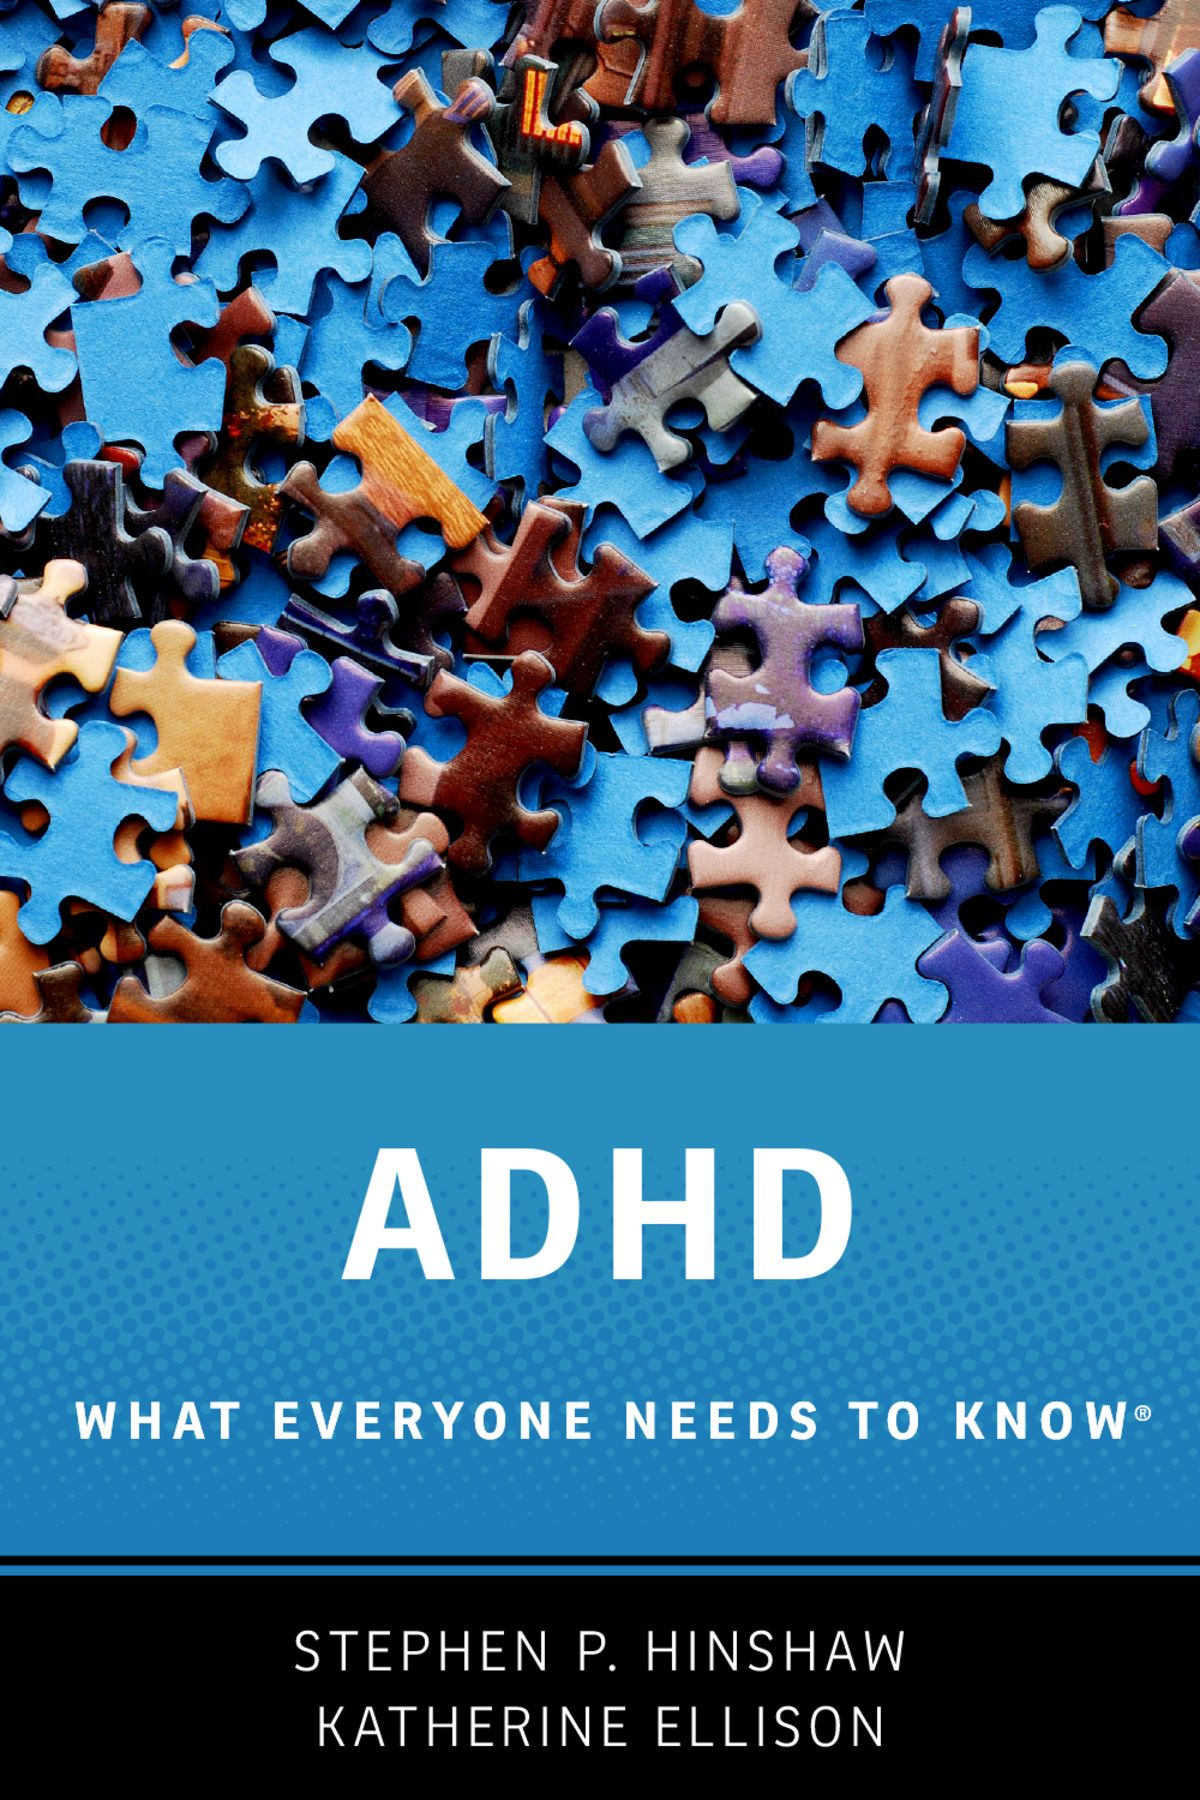 Decades Of Failing To Recognize Adhd In >> The Danger Of Overdiagnosis Amid The Childhood Adhd Epidemic